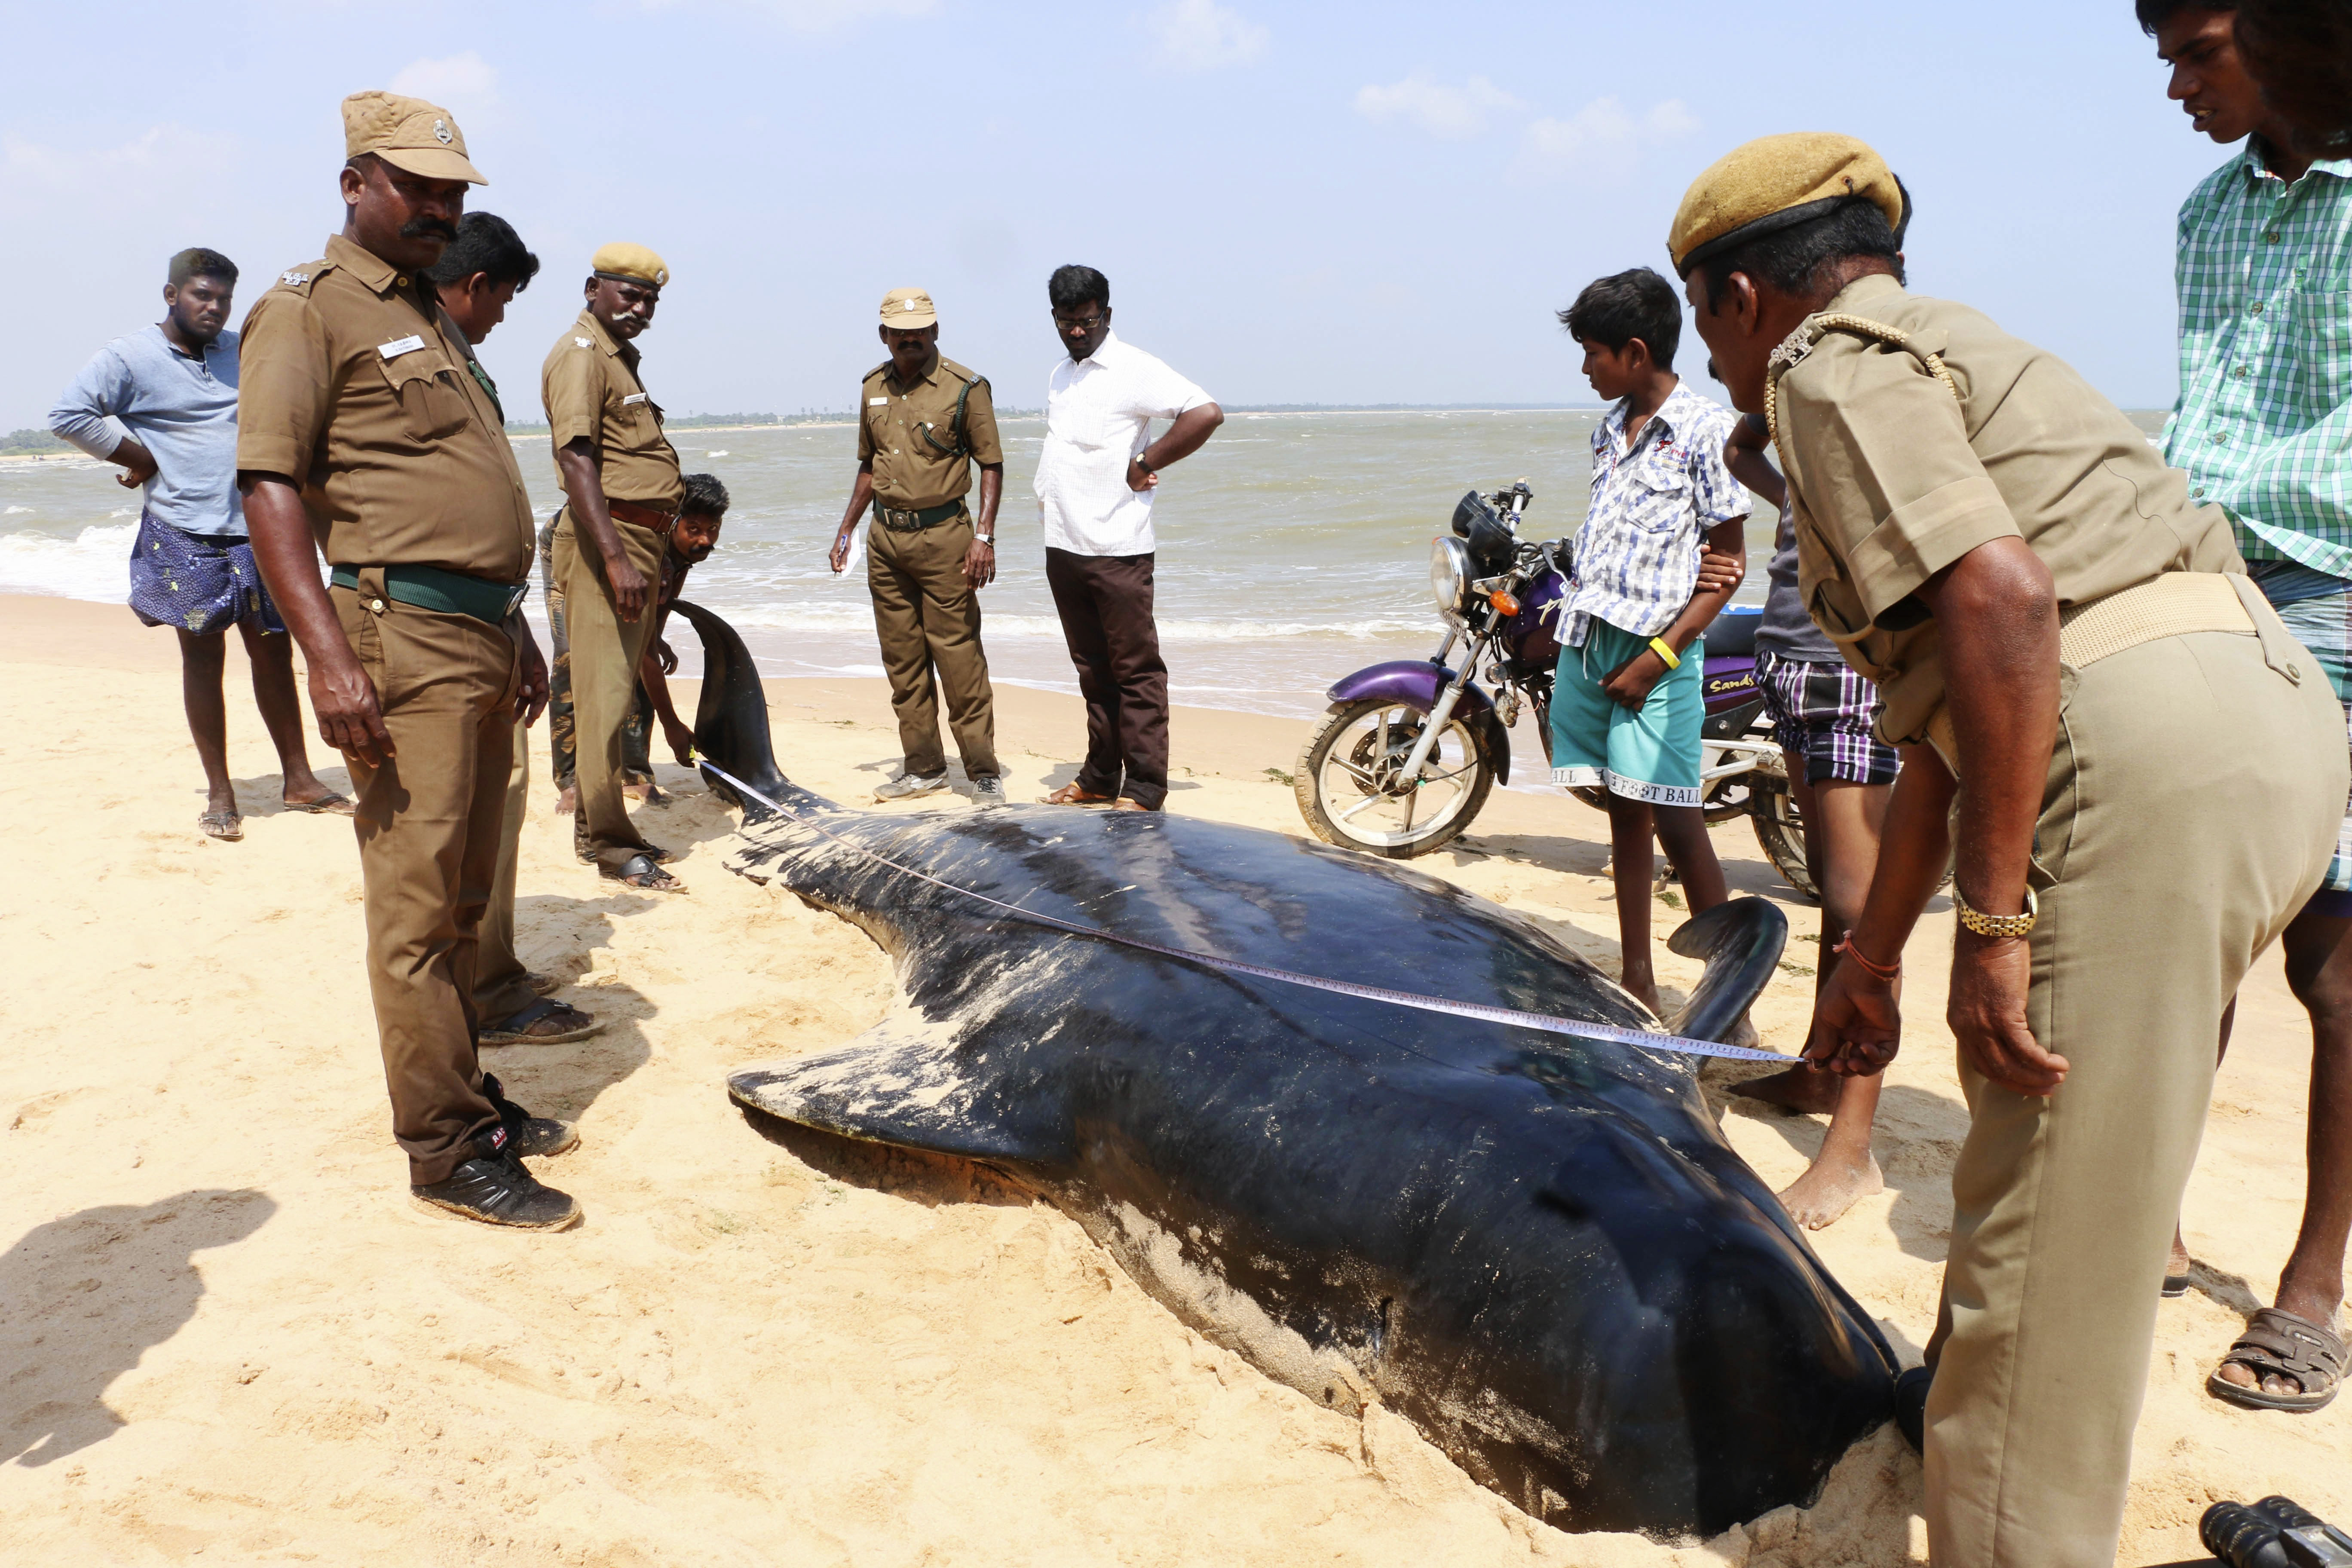 Indian wildlife officials measure one among the dozens of whales that have washed ashore on the Bay of Bengal coast's Manapad beach in Tuticorin district, Tamil Nadu state, India on Tuesday, Jan.12, 2016.